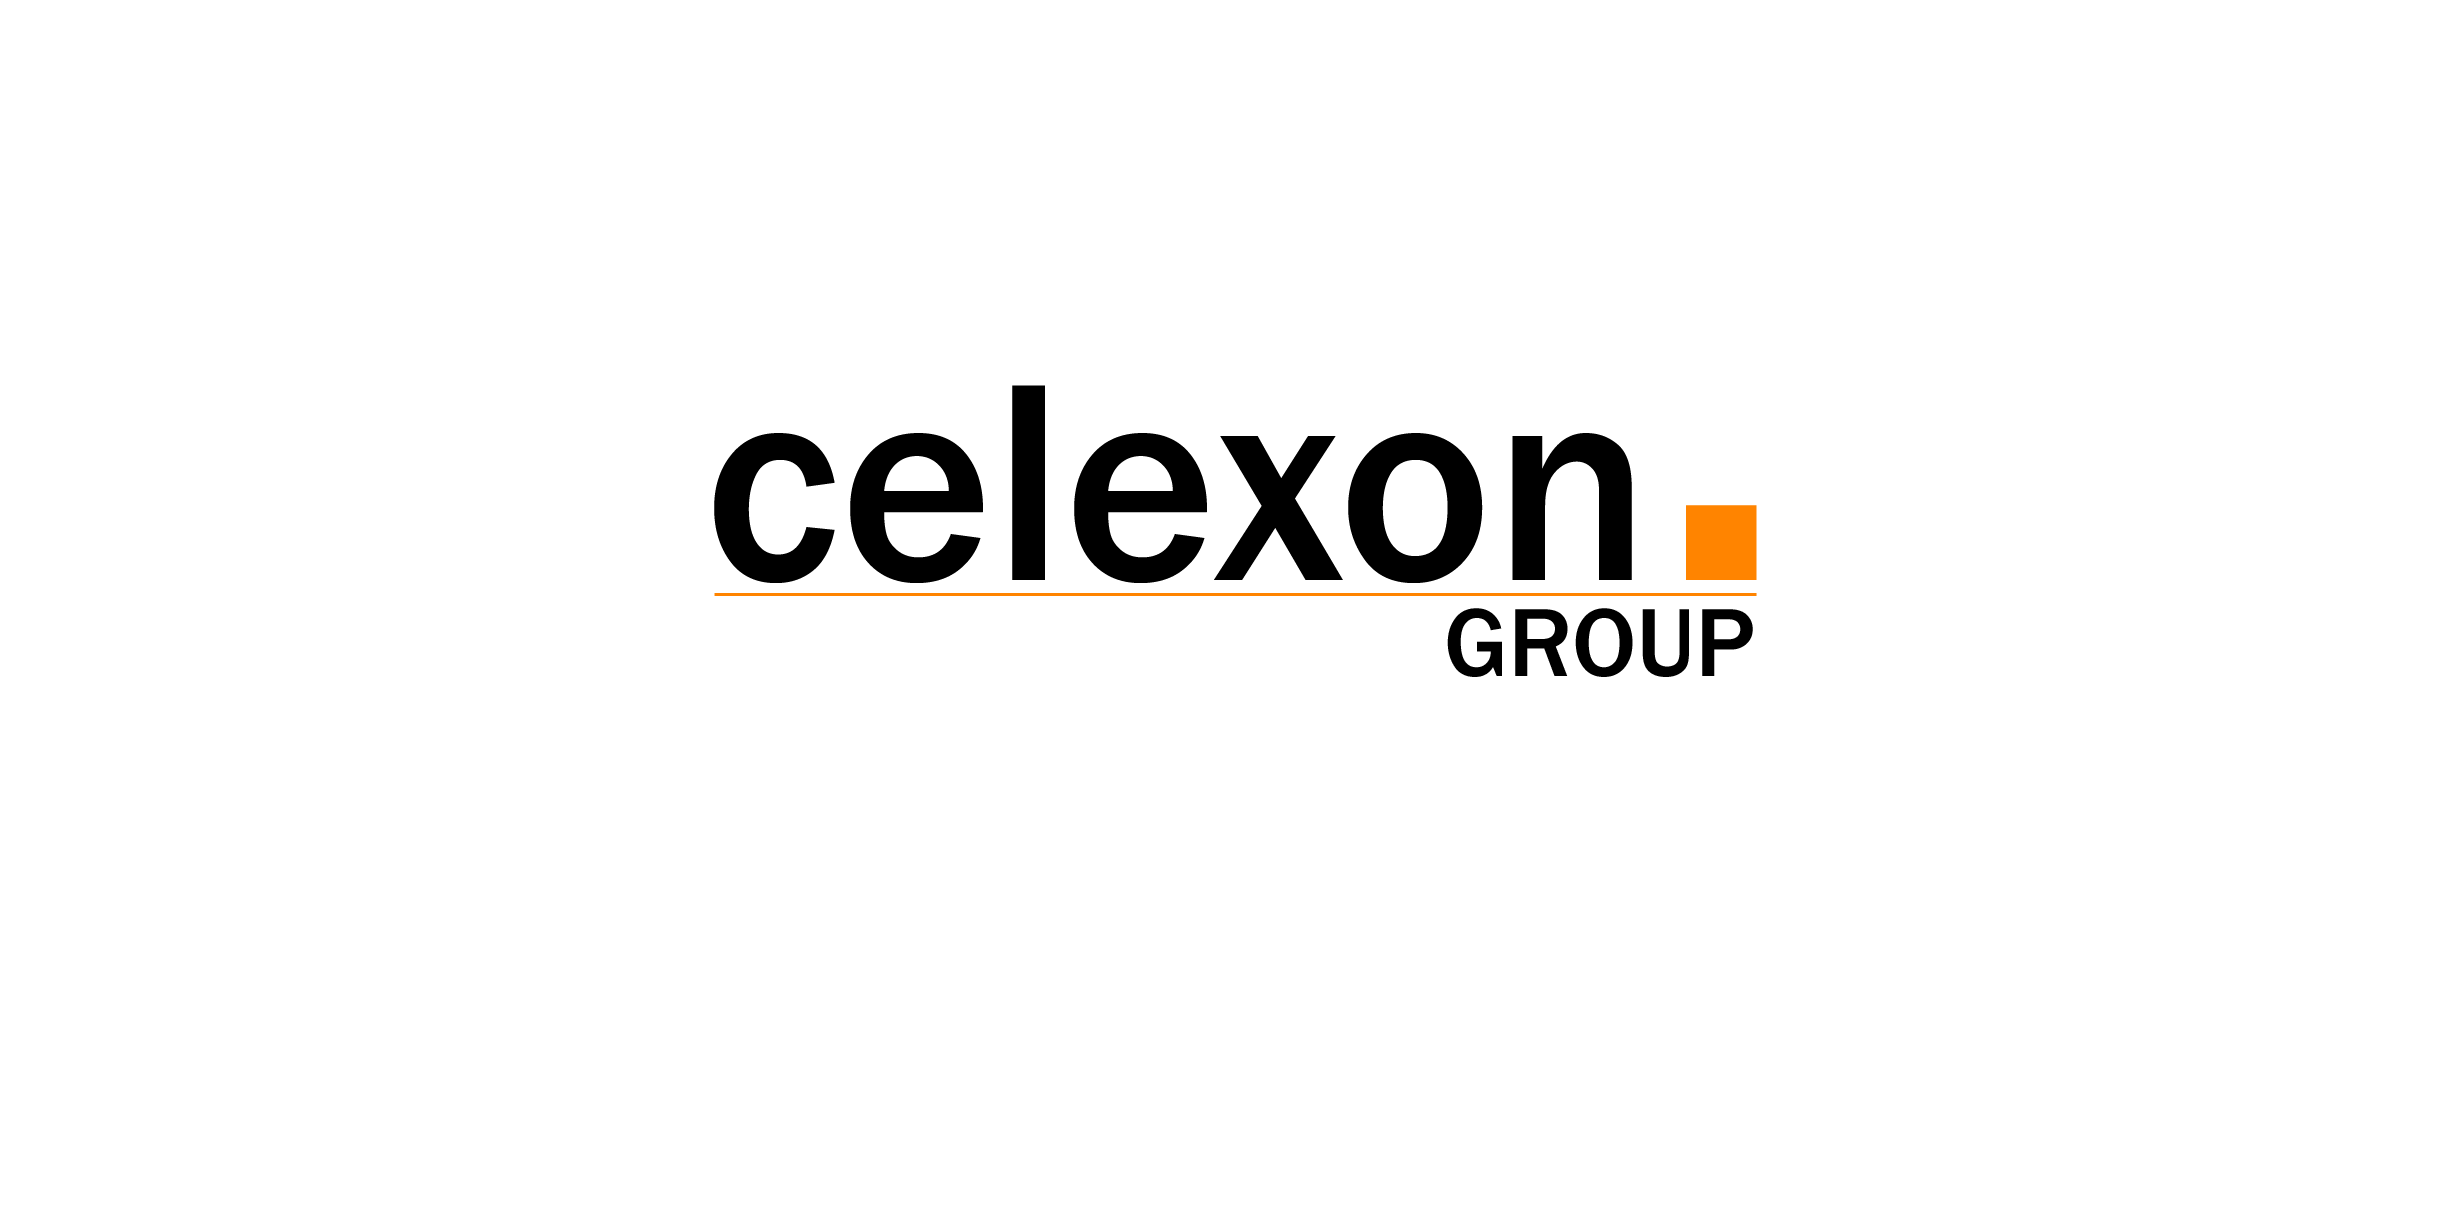 celexon Group